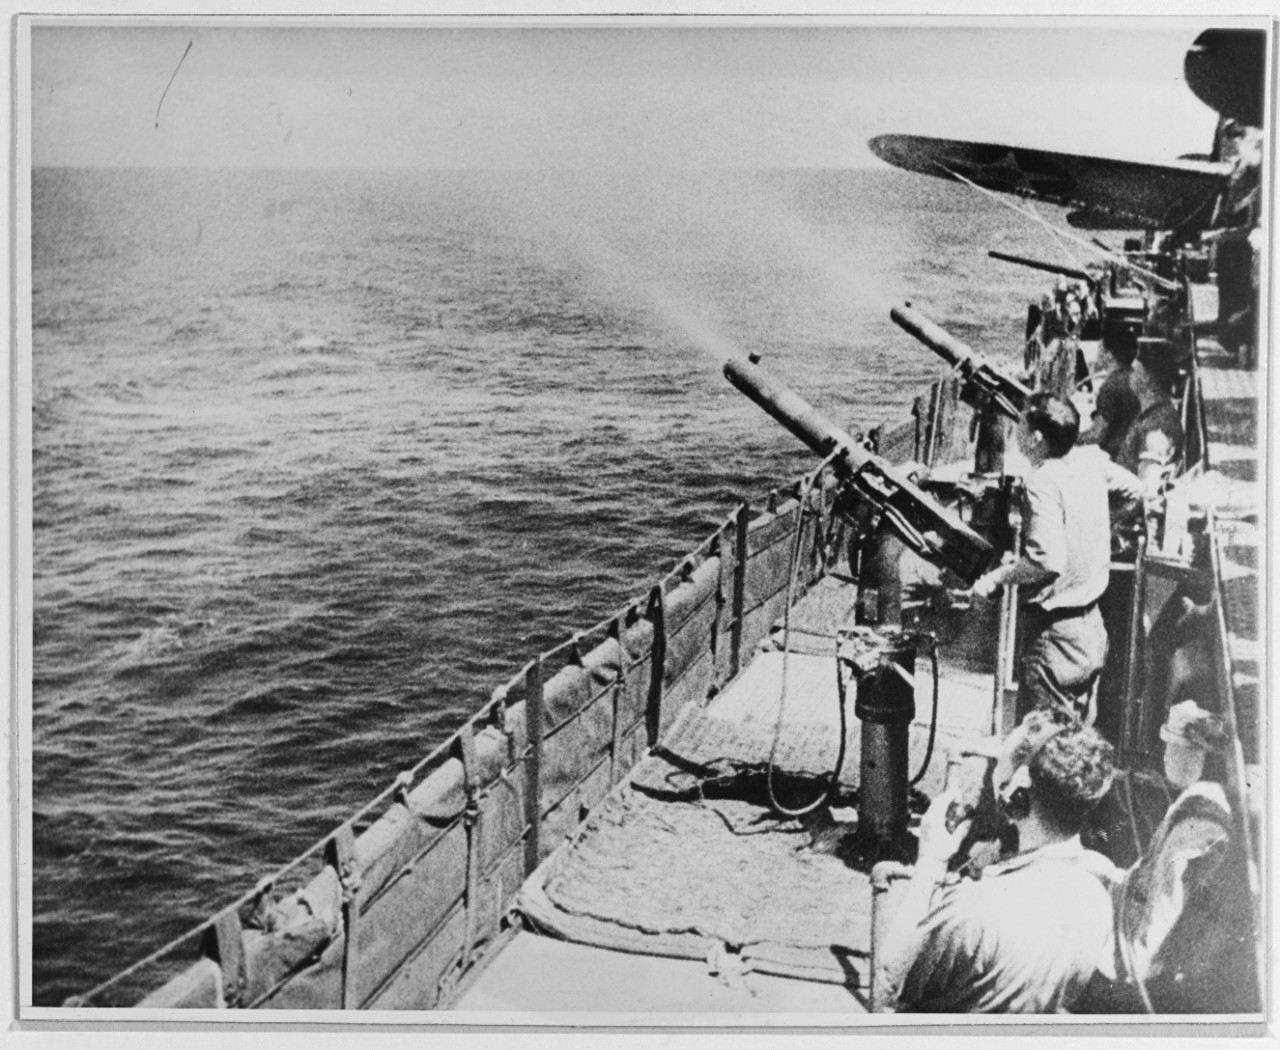 Crewmen practice firing .50 caliber machine guns, early 1942. The wing of a Dauntless is visible (right). (Naval History and Heritage Command Photograph NH 50935)